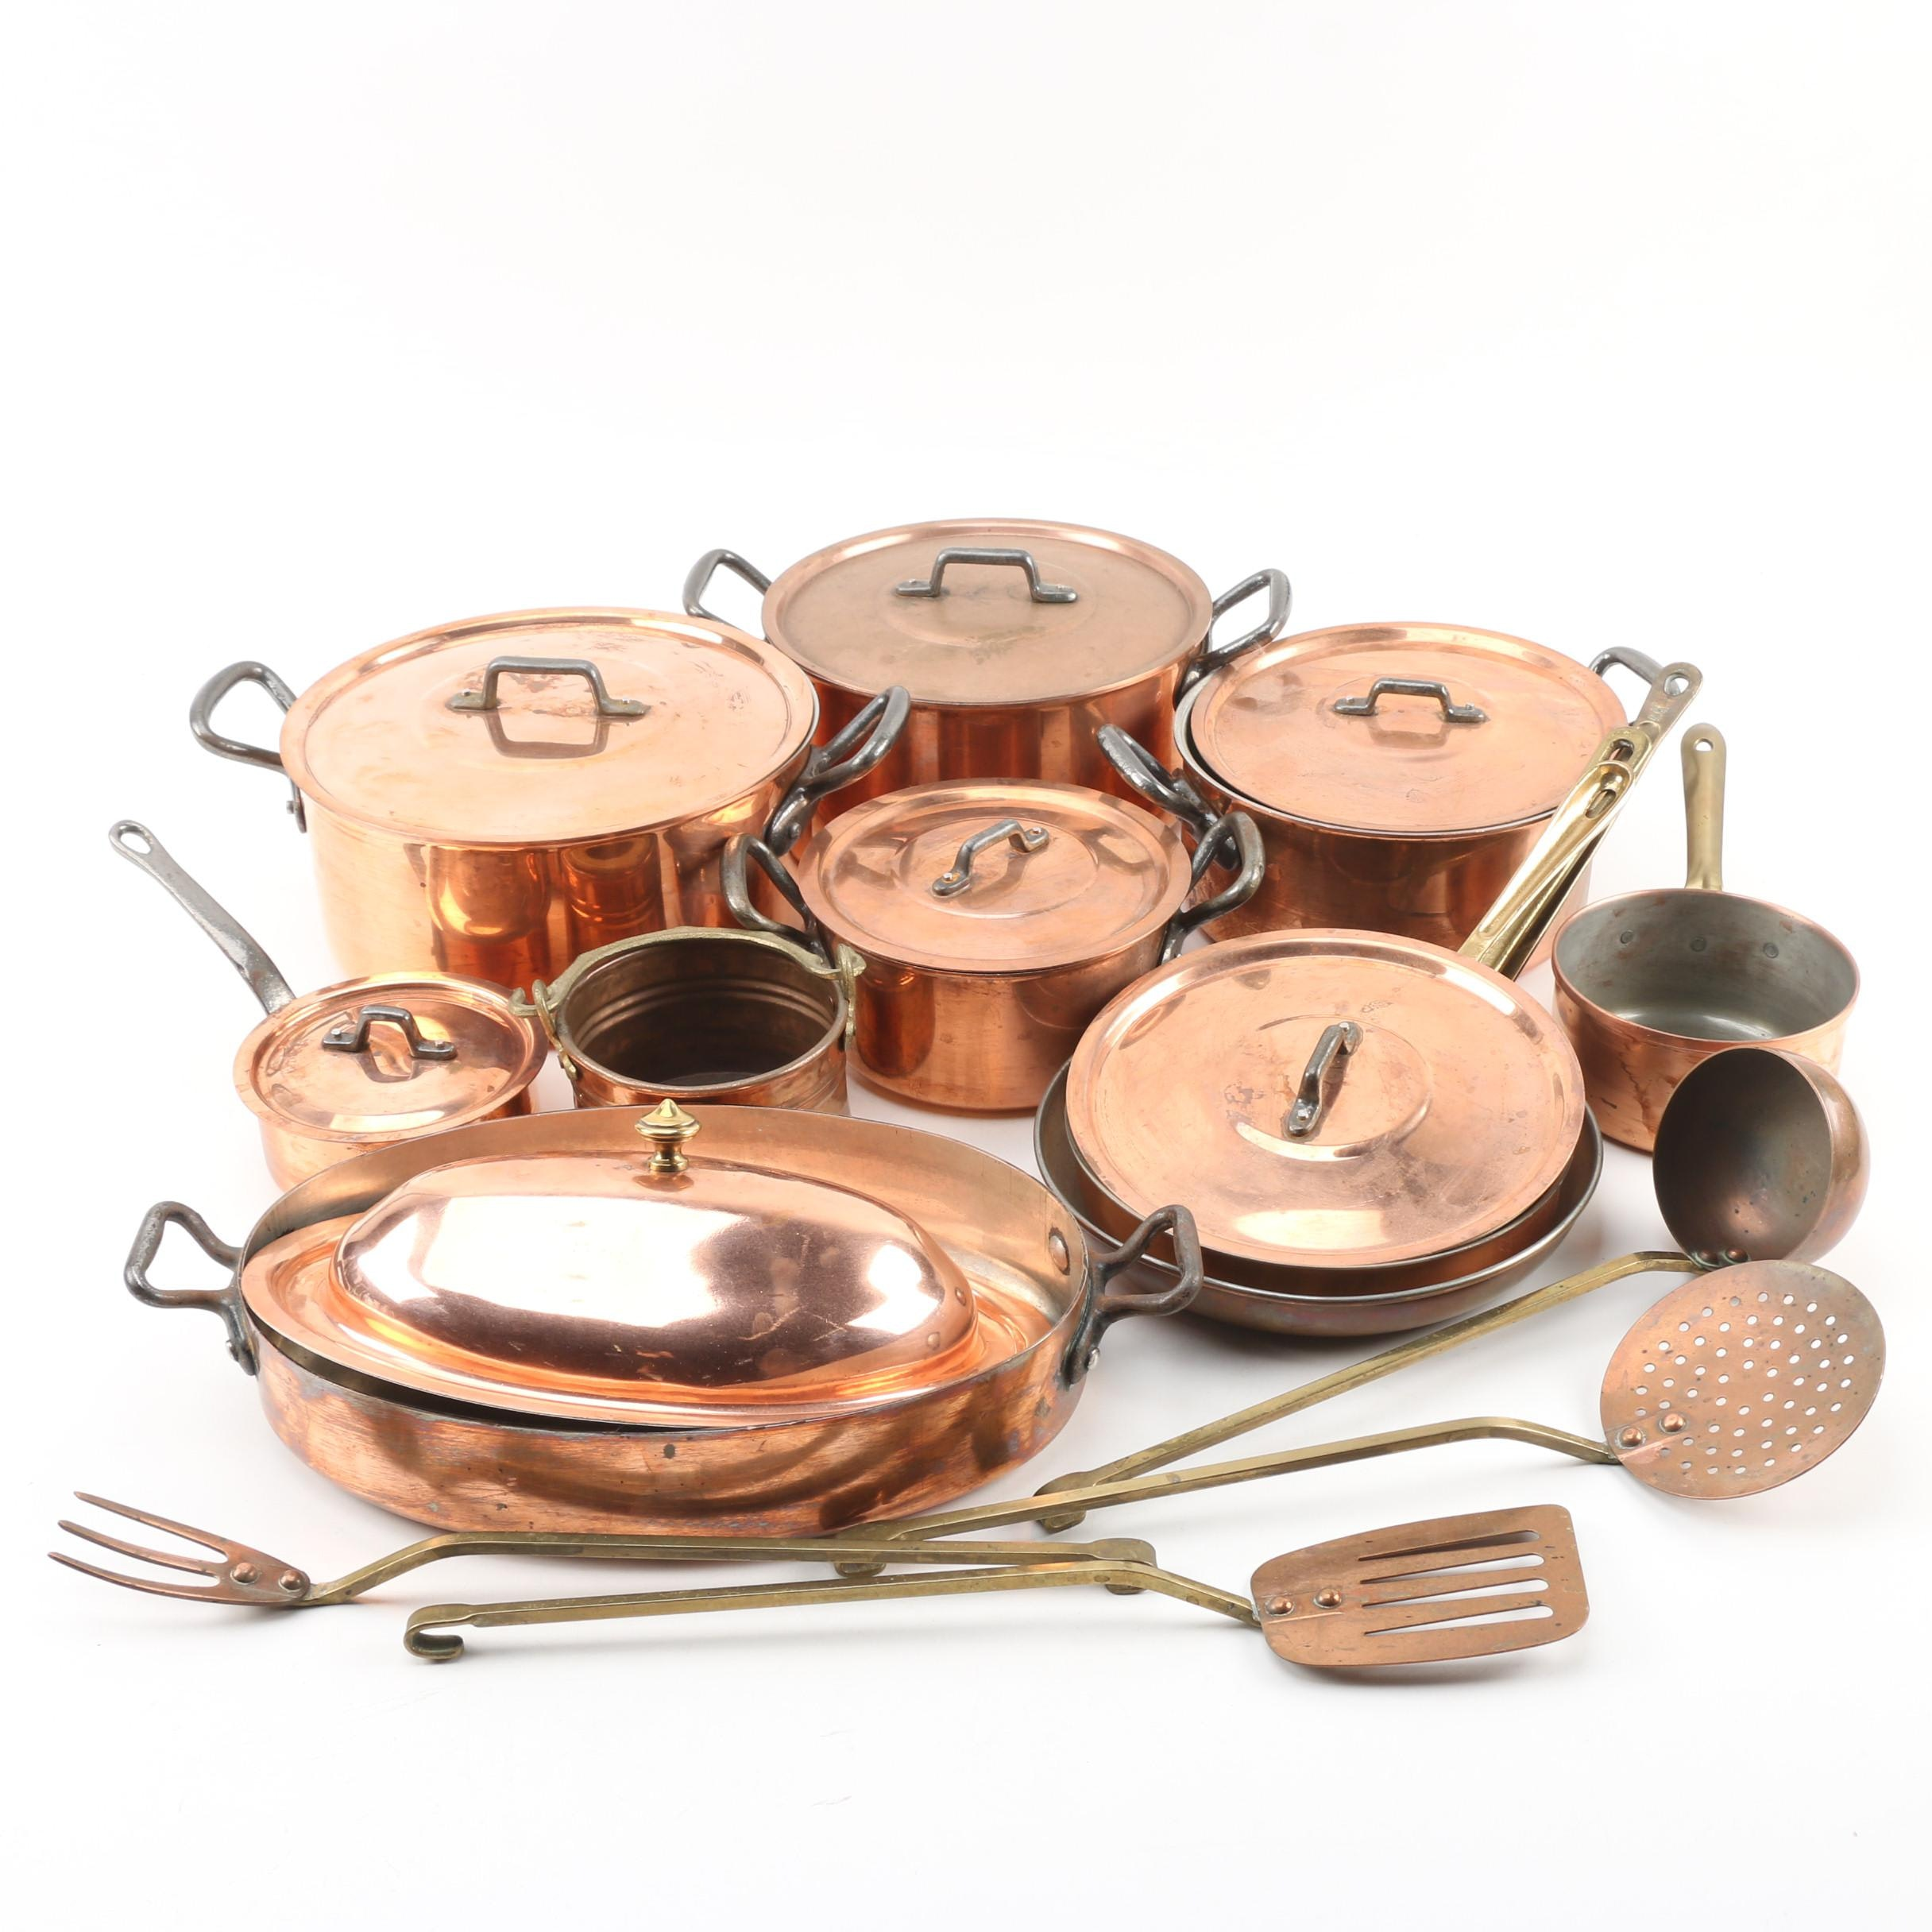 Copper Cookware and Utensils